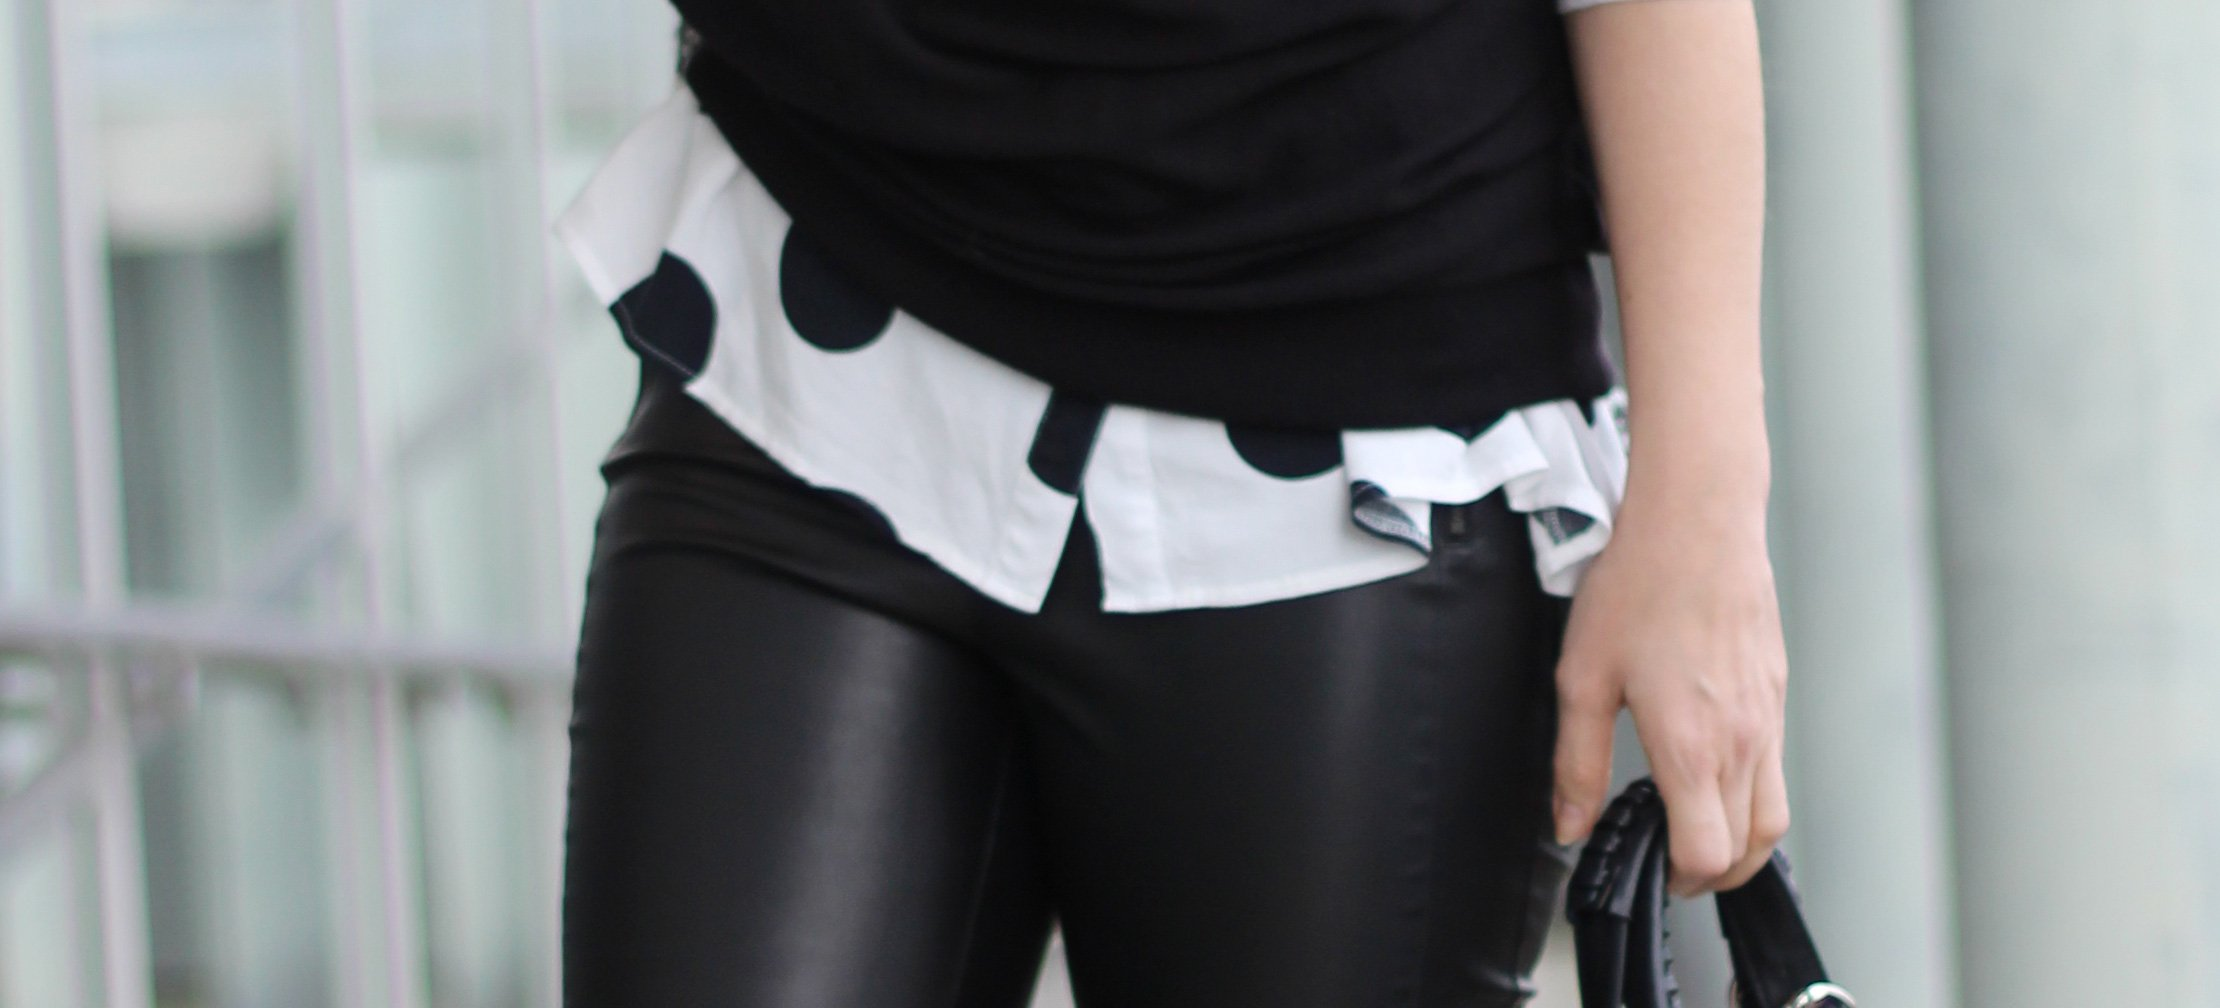 Fakeleder, black and white, boss orange, Kunstlederhose, Punktebluse